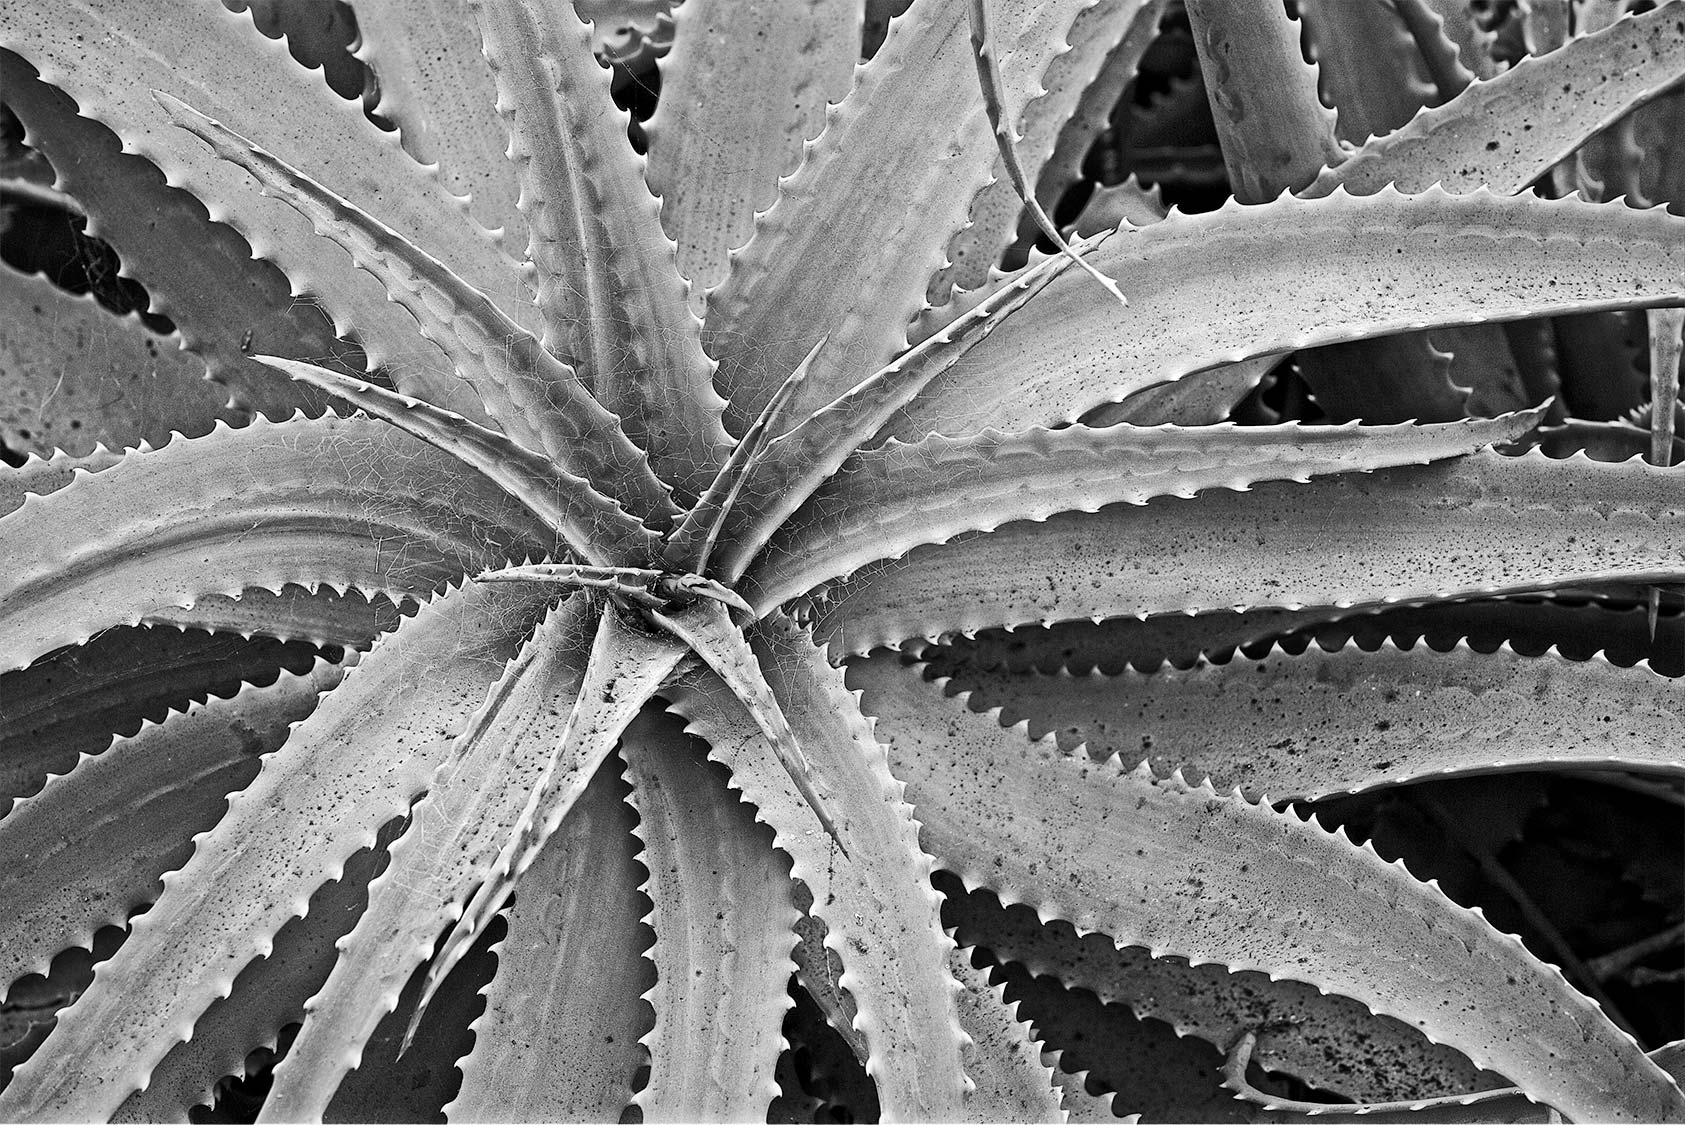 Thorny-Issue_B_W